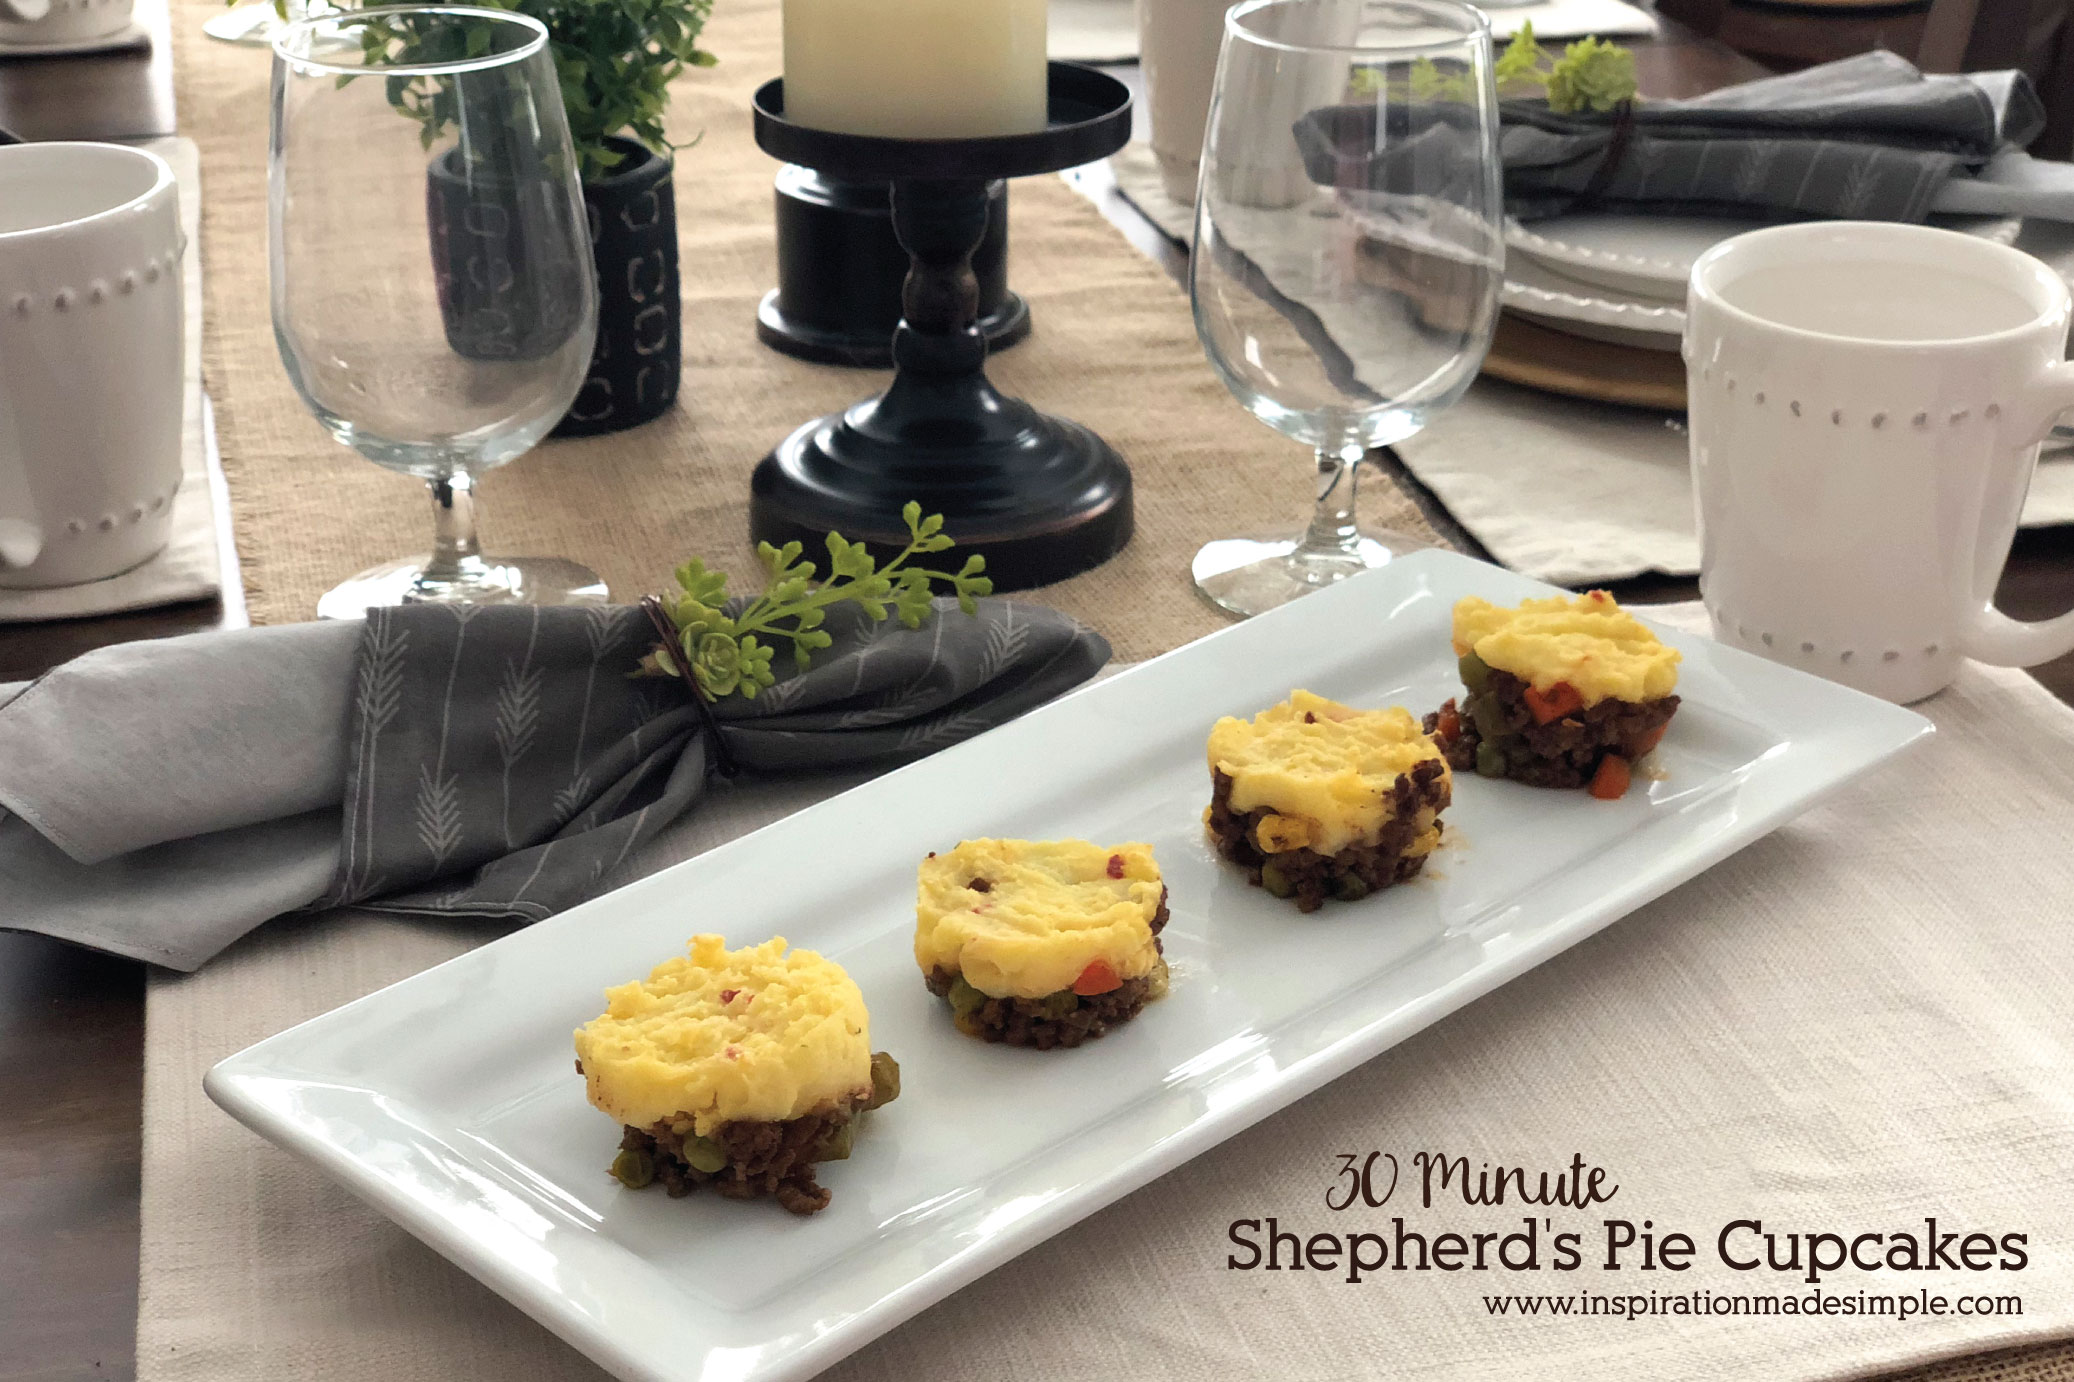 Easy Shepherd's Pie Cupcakes